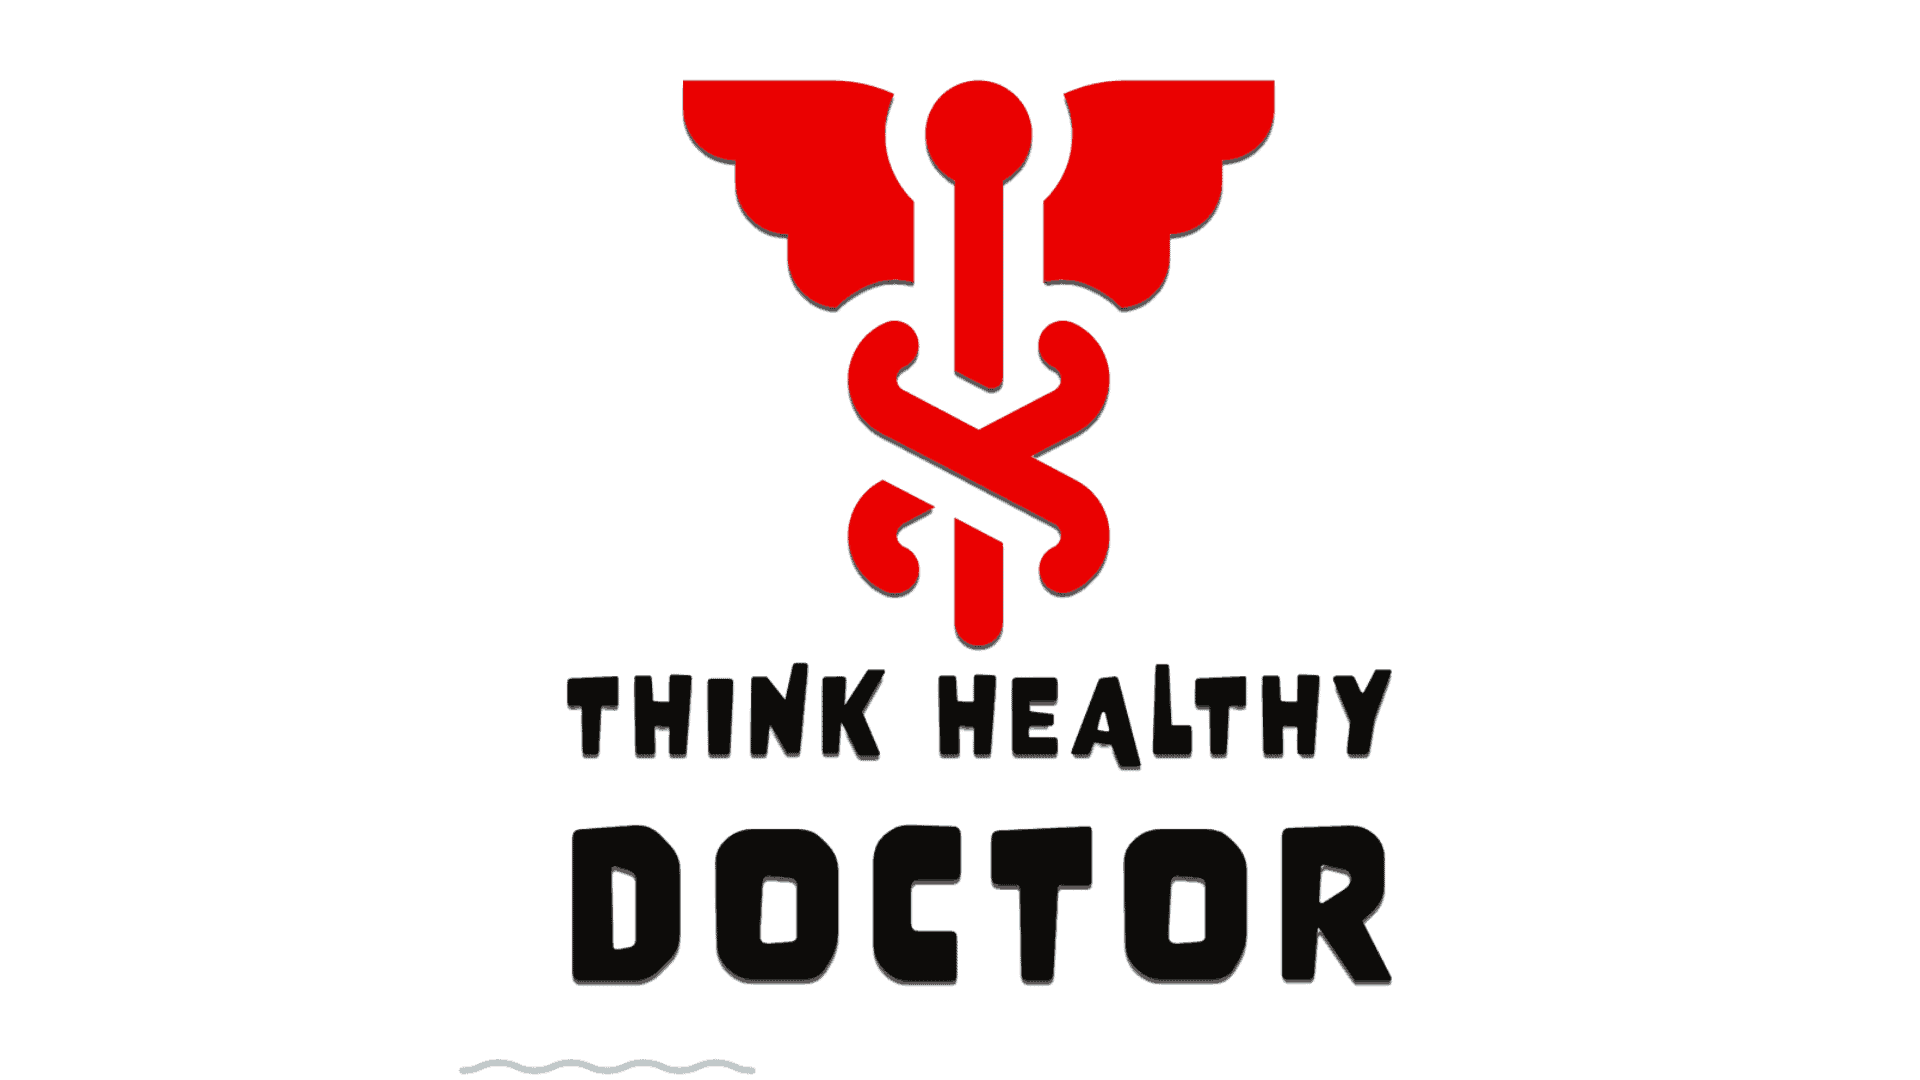 Think healthy doctor media mentions